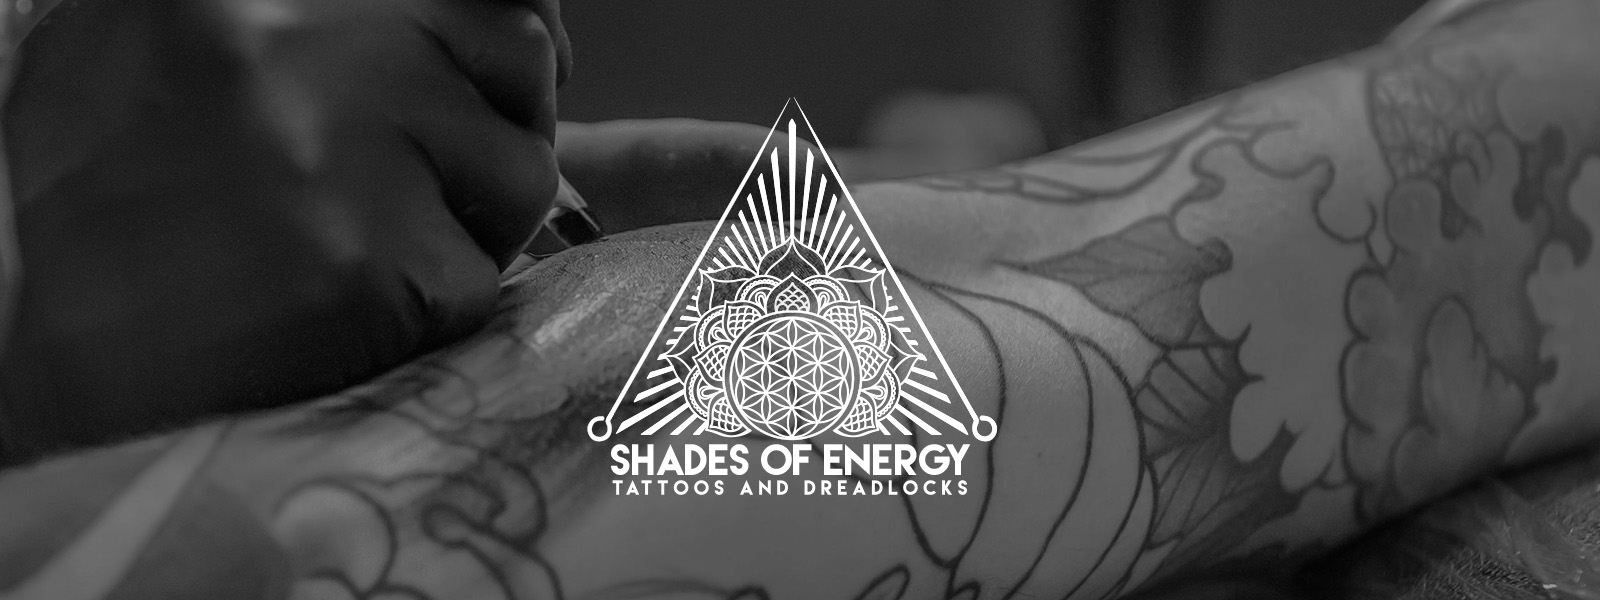 Shades of energy tattoo studio in Pune